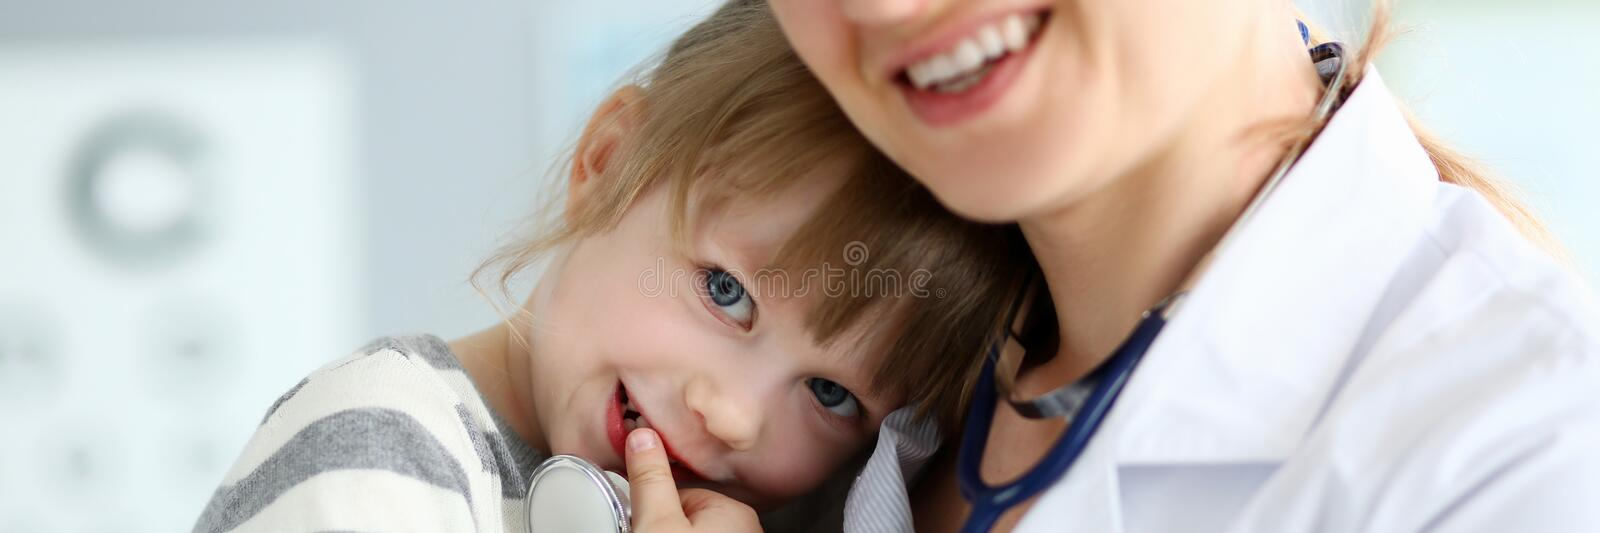 Paediatric doctor holding and hugging little cute girl patient royalty free stock photography